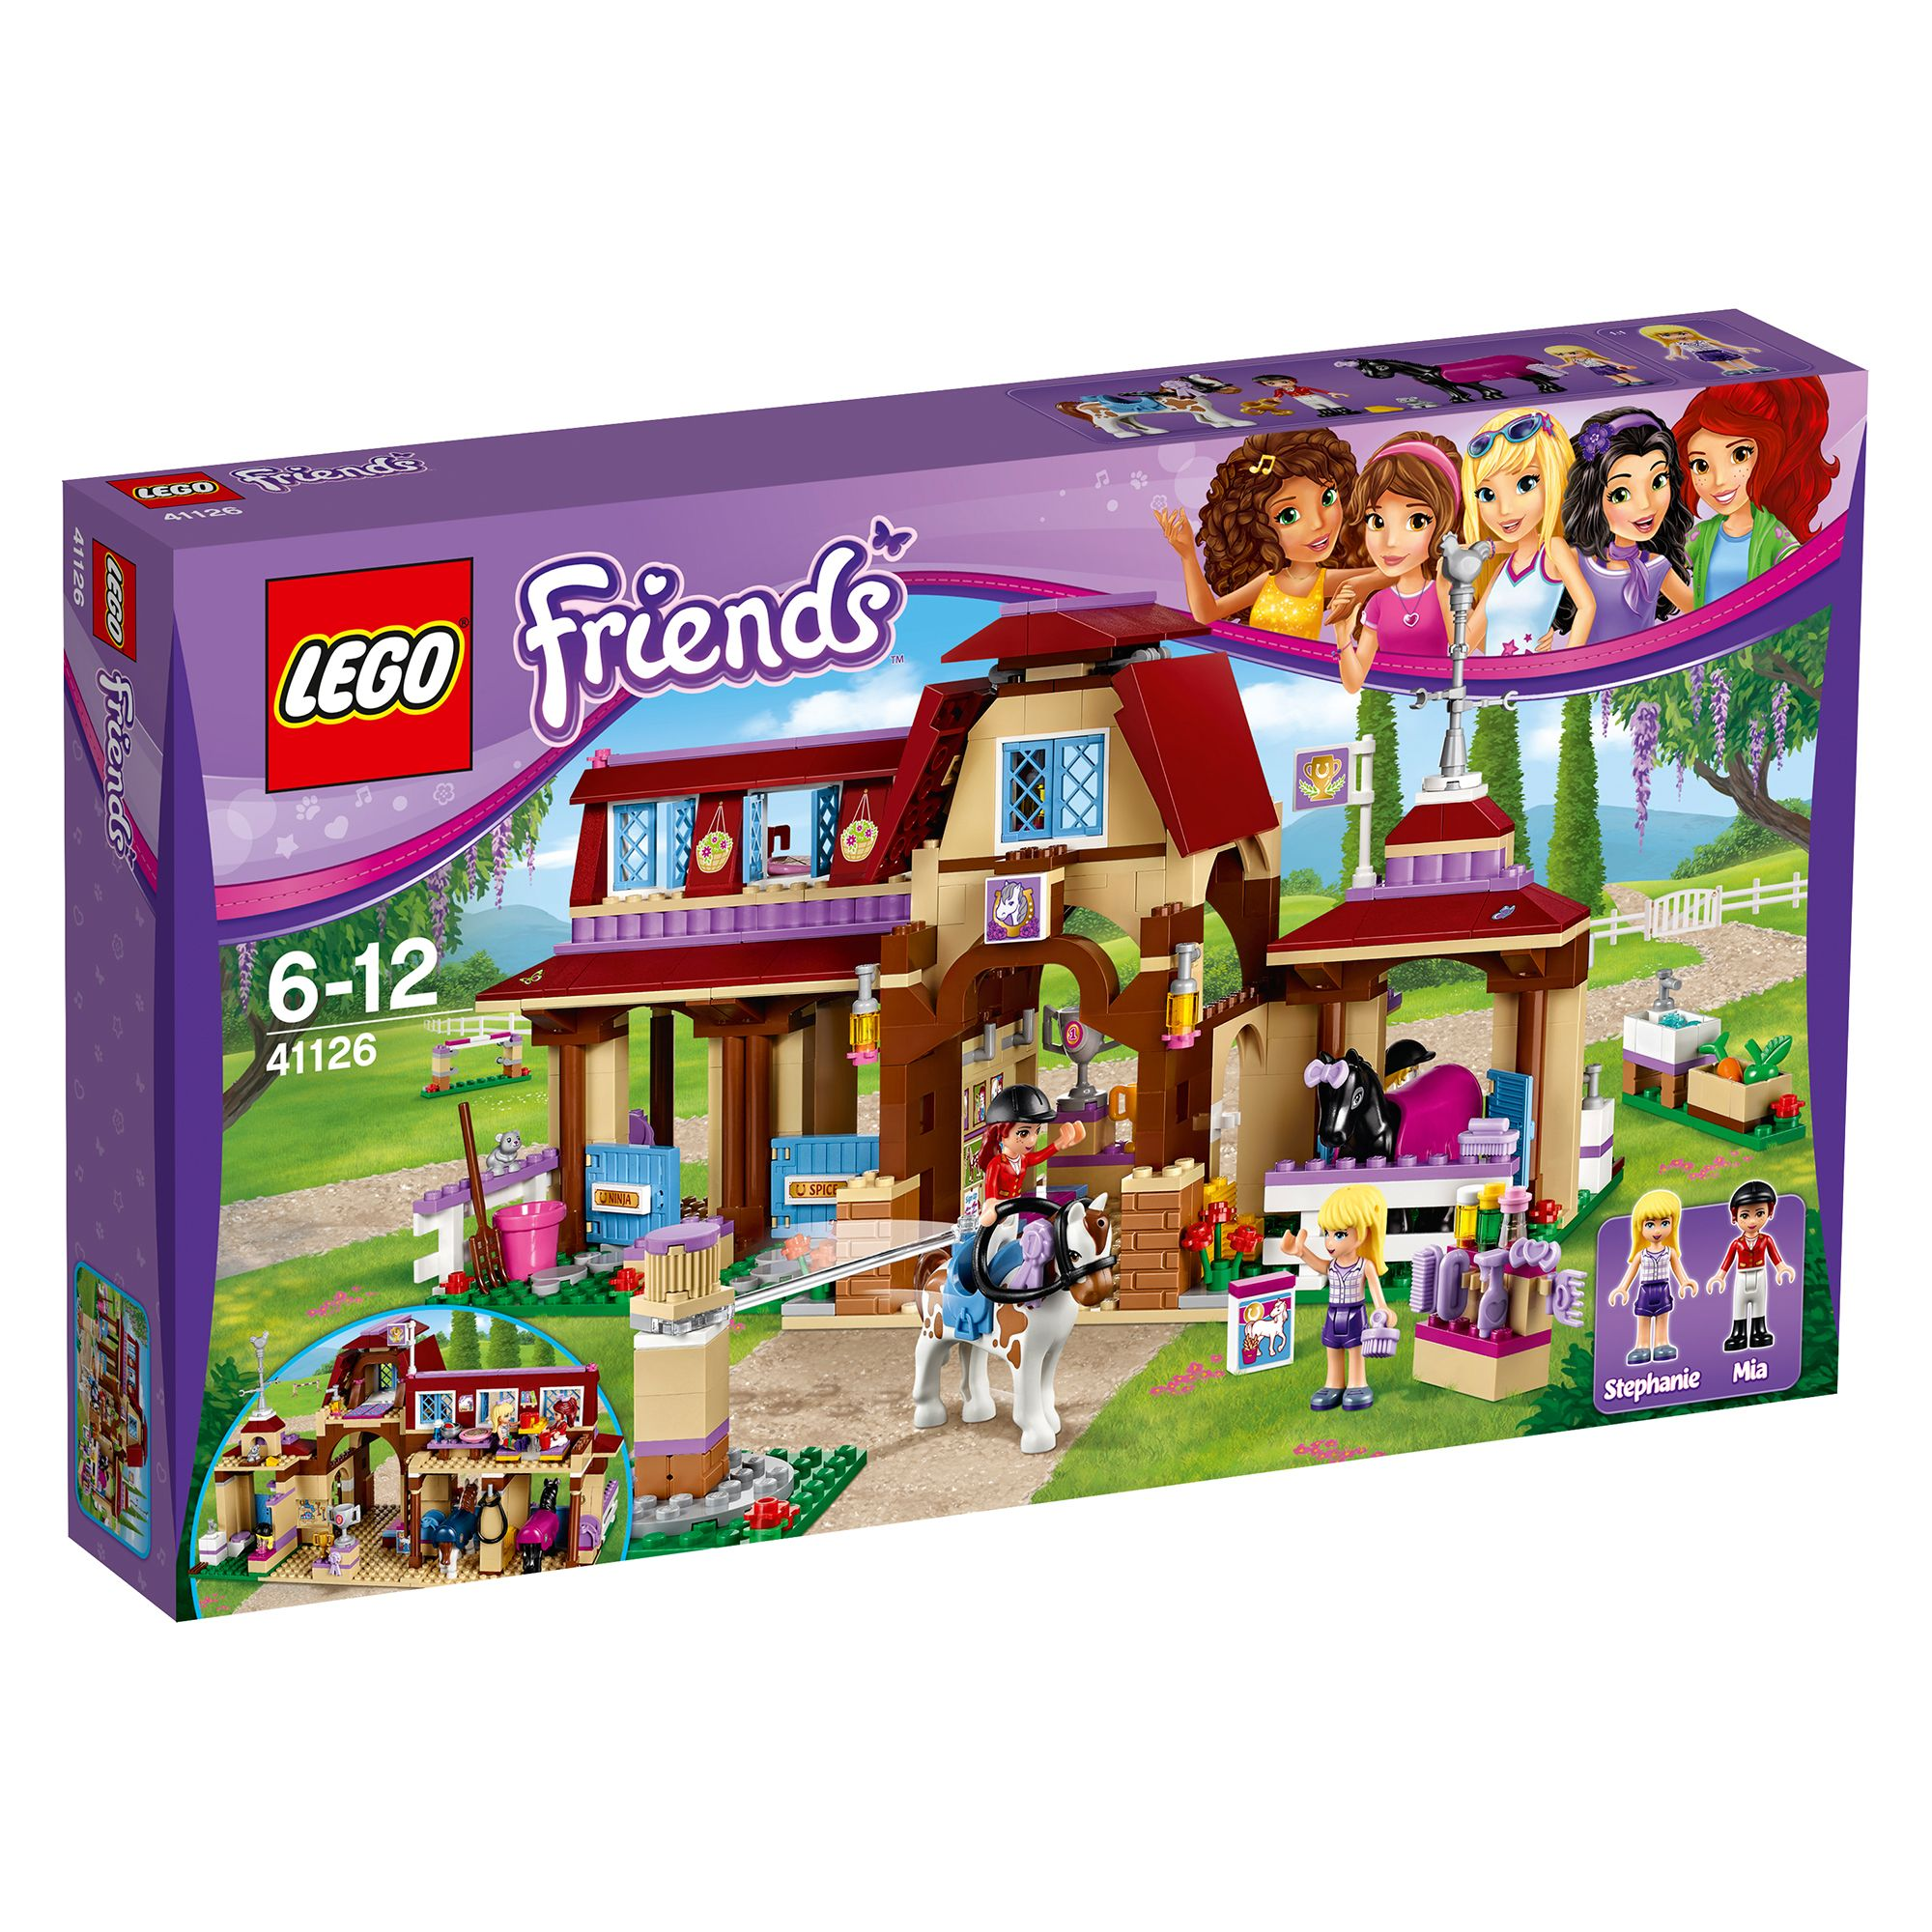 Lego Friends Heartlake Stables Shop For Cheap Toys And Save Online